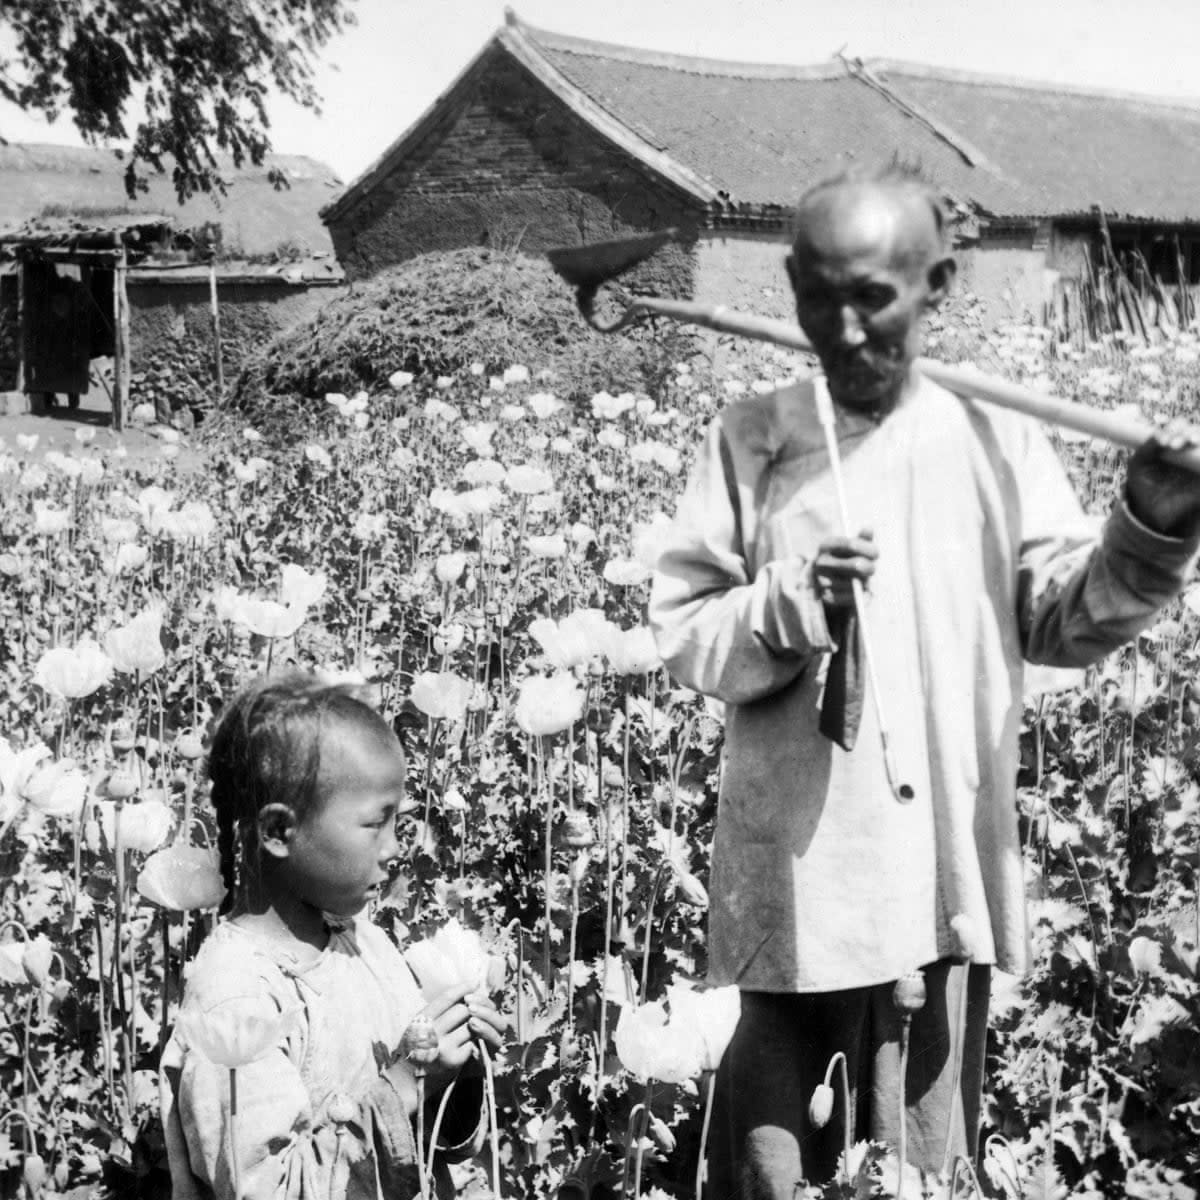 Opium fields in Yunnan: these were an important part of the revenue of French Indochina